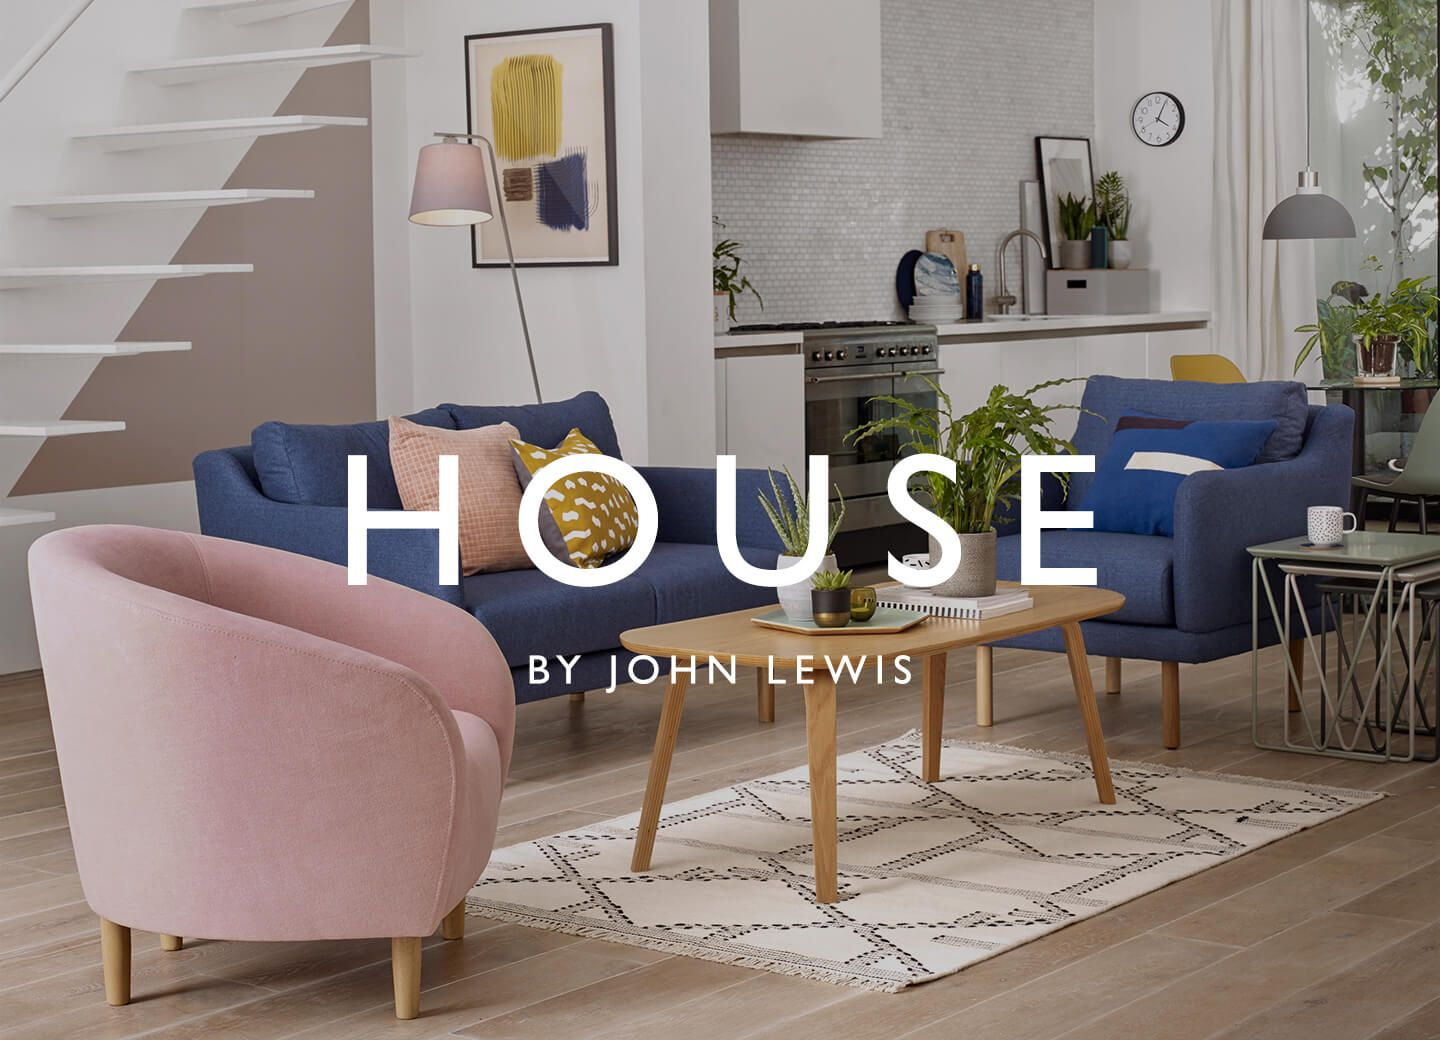 Contemporary interior design inspiration from House by John Lewis